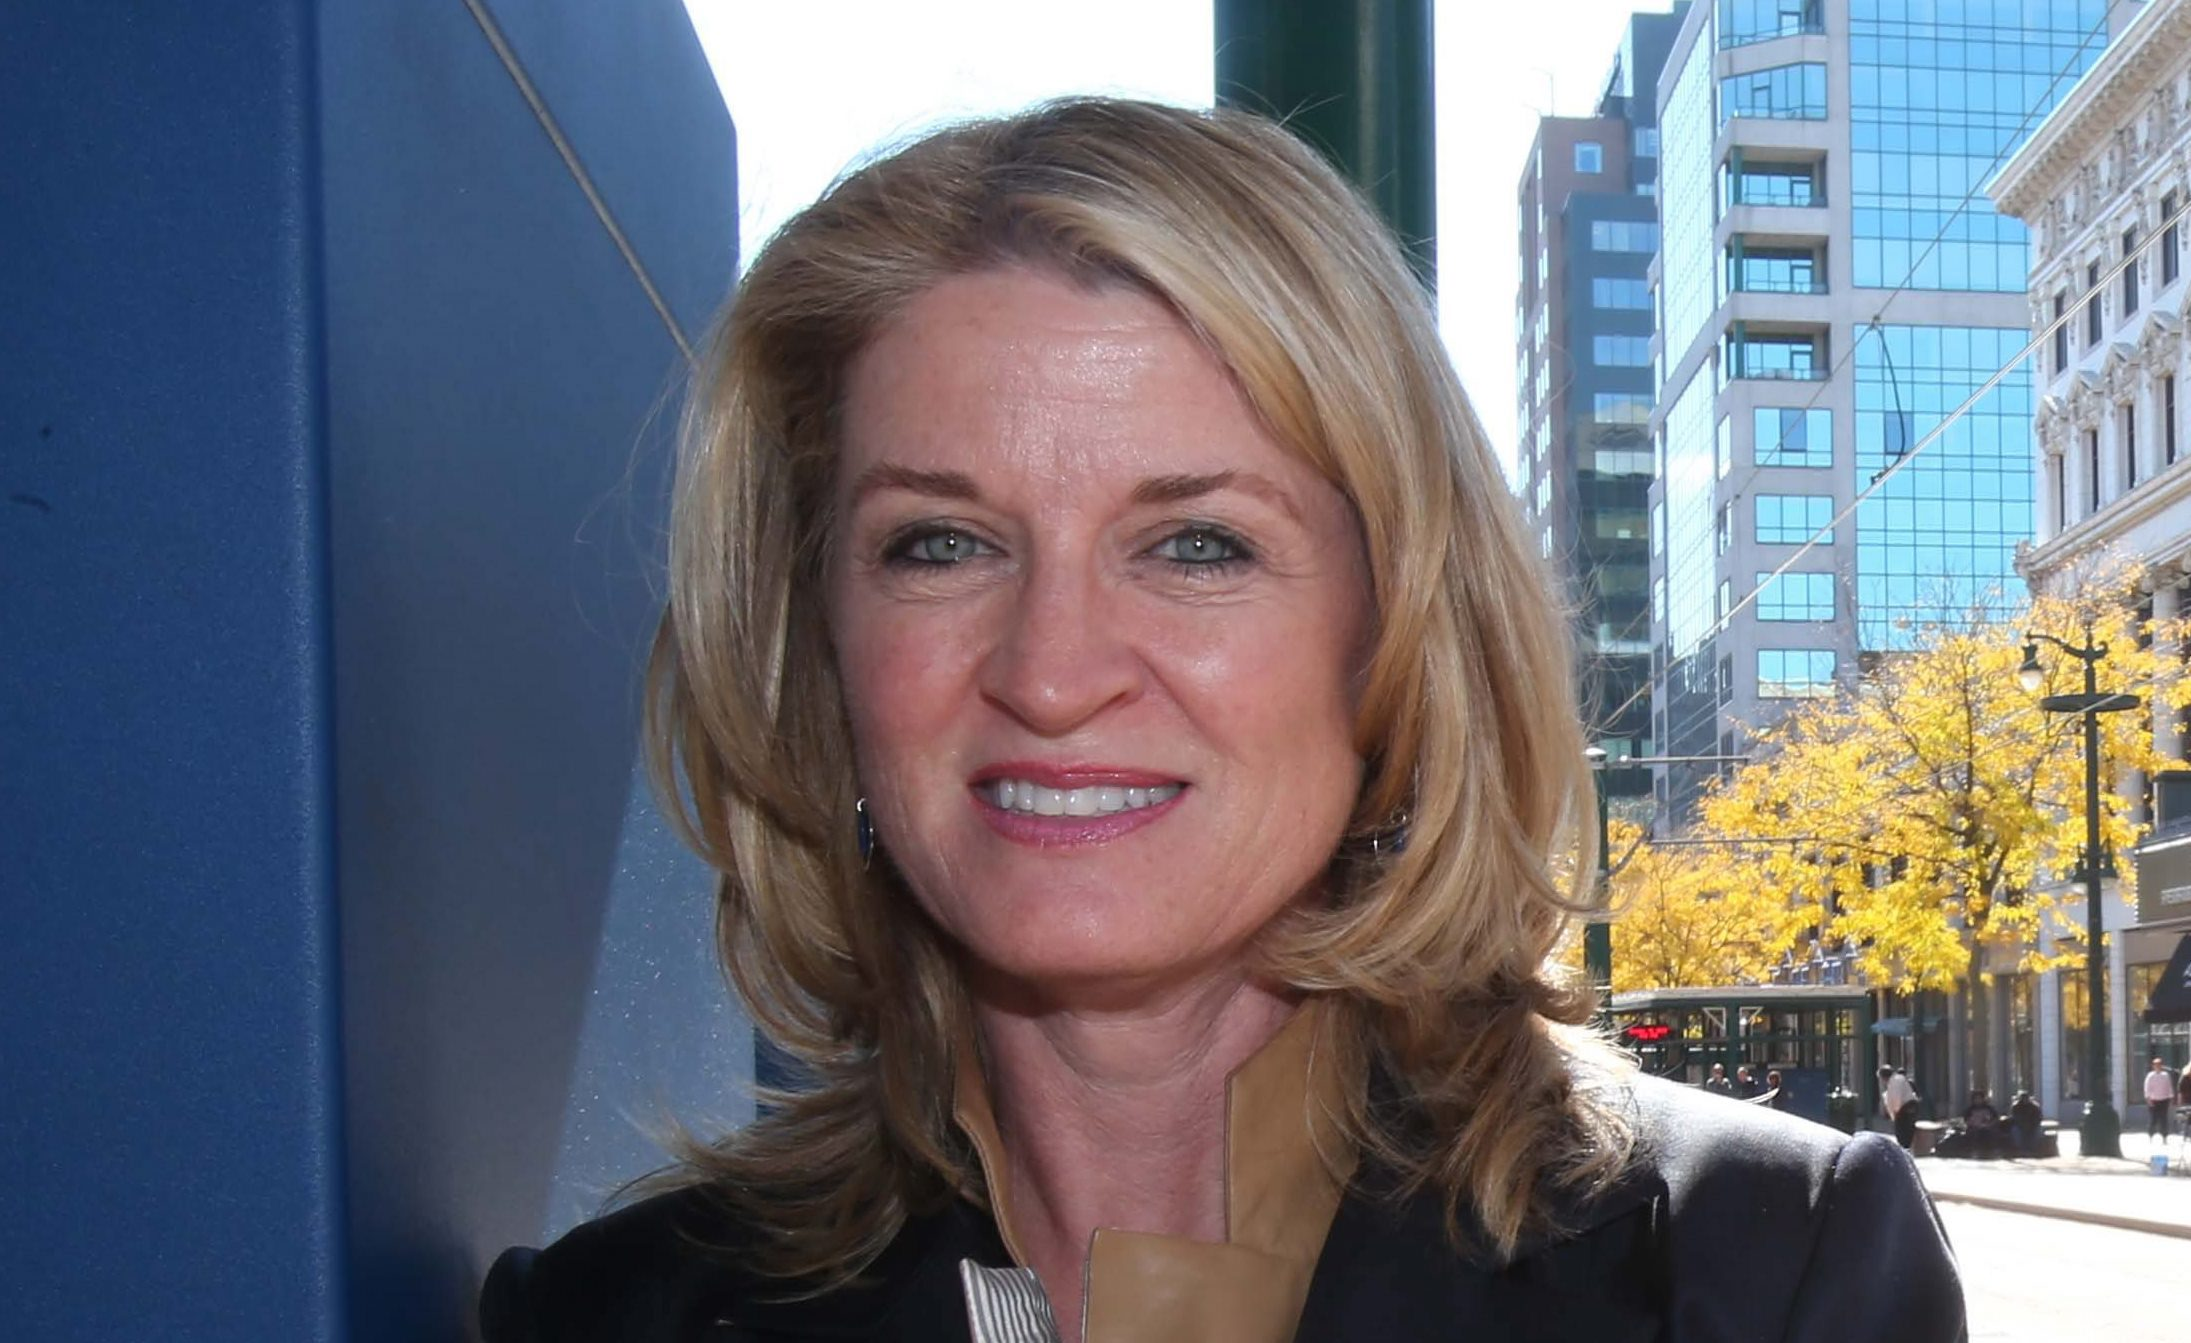 Wendy Long is a former candidate for U.S. Senate. (News file photo)